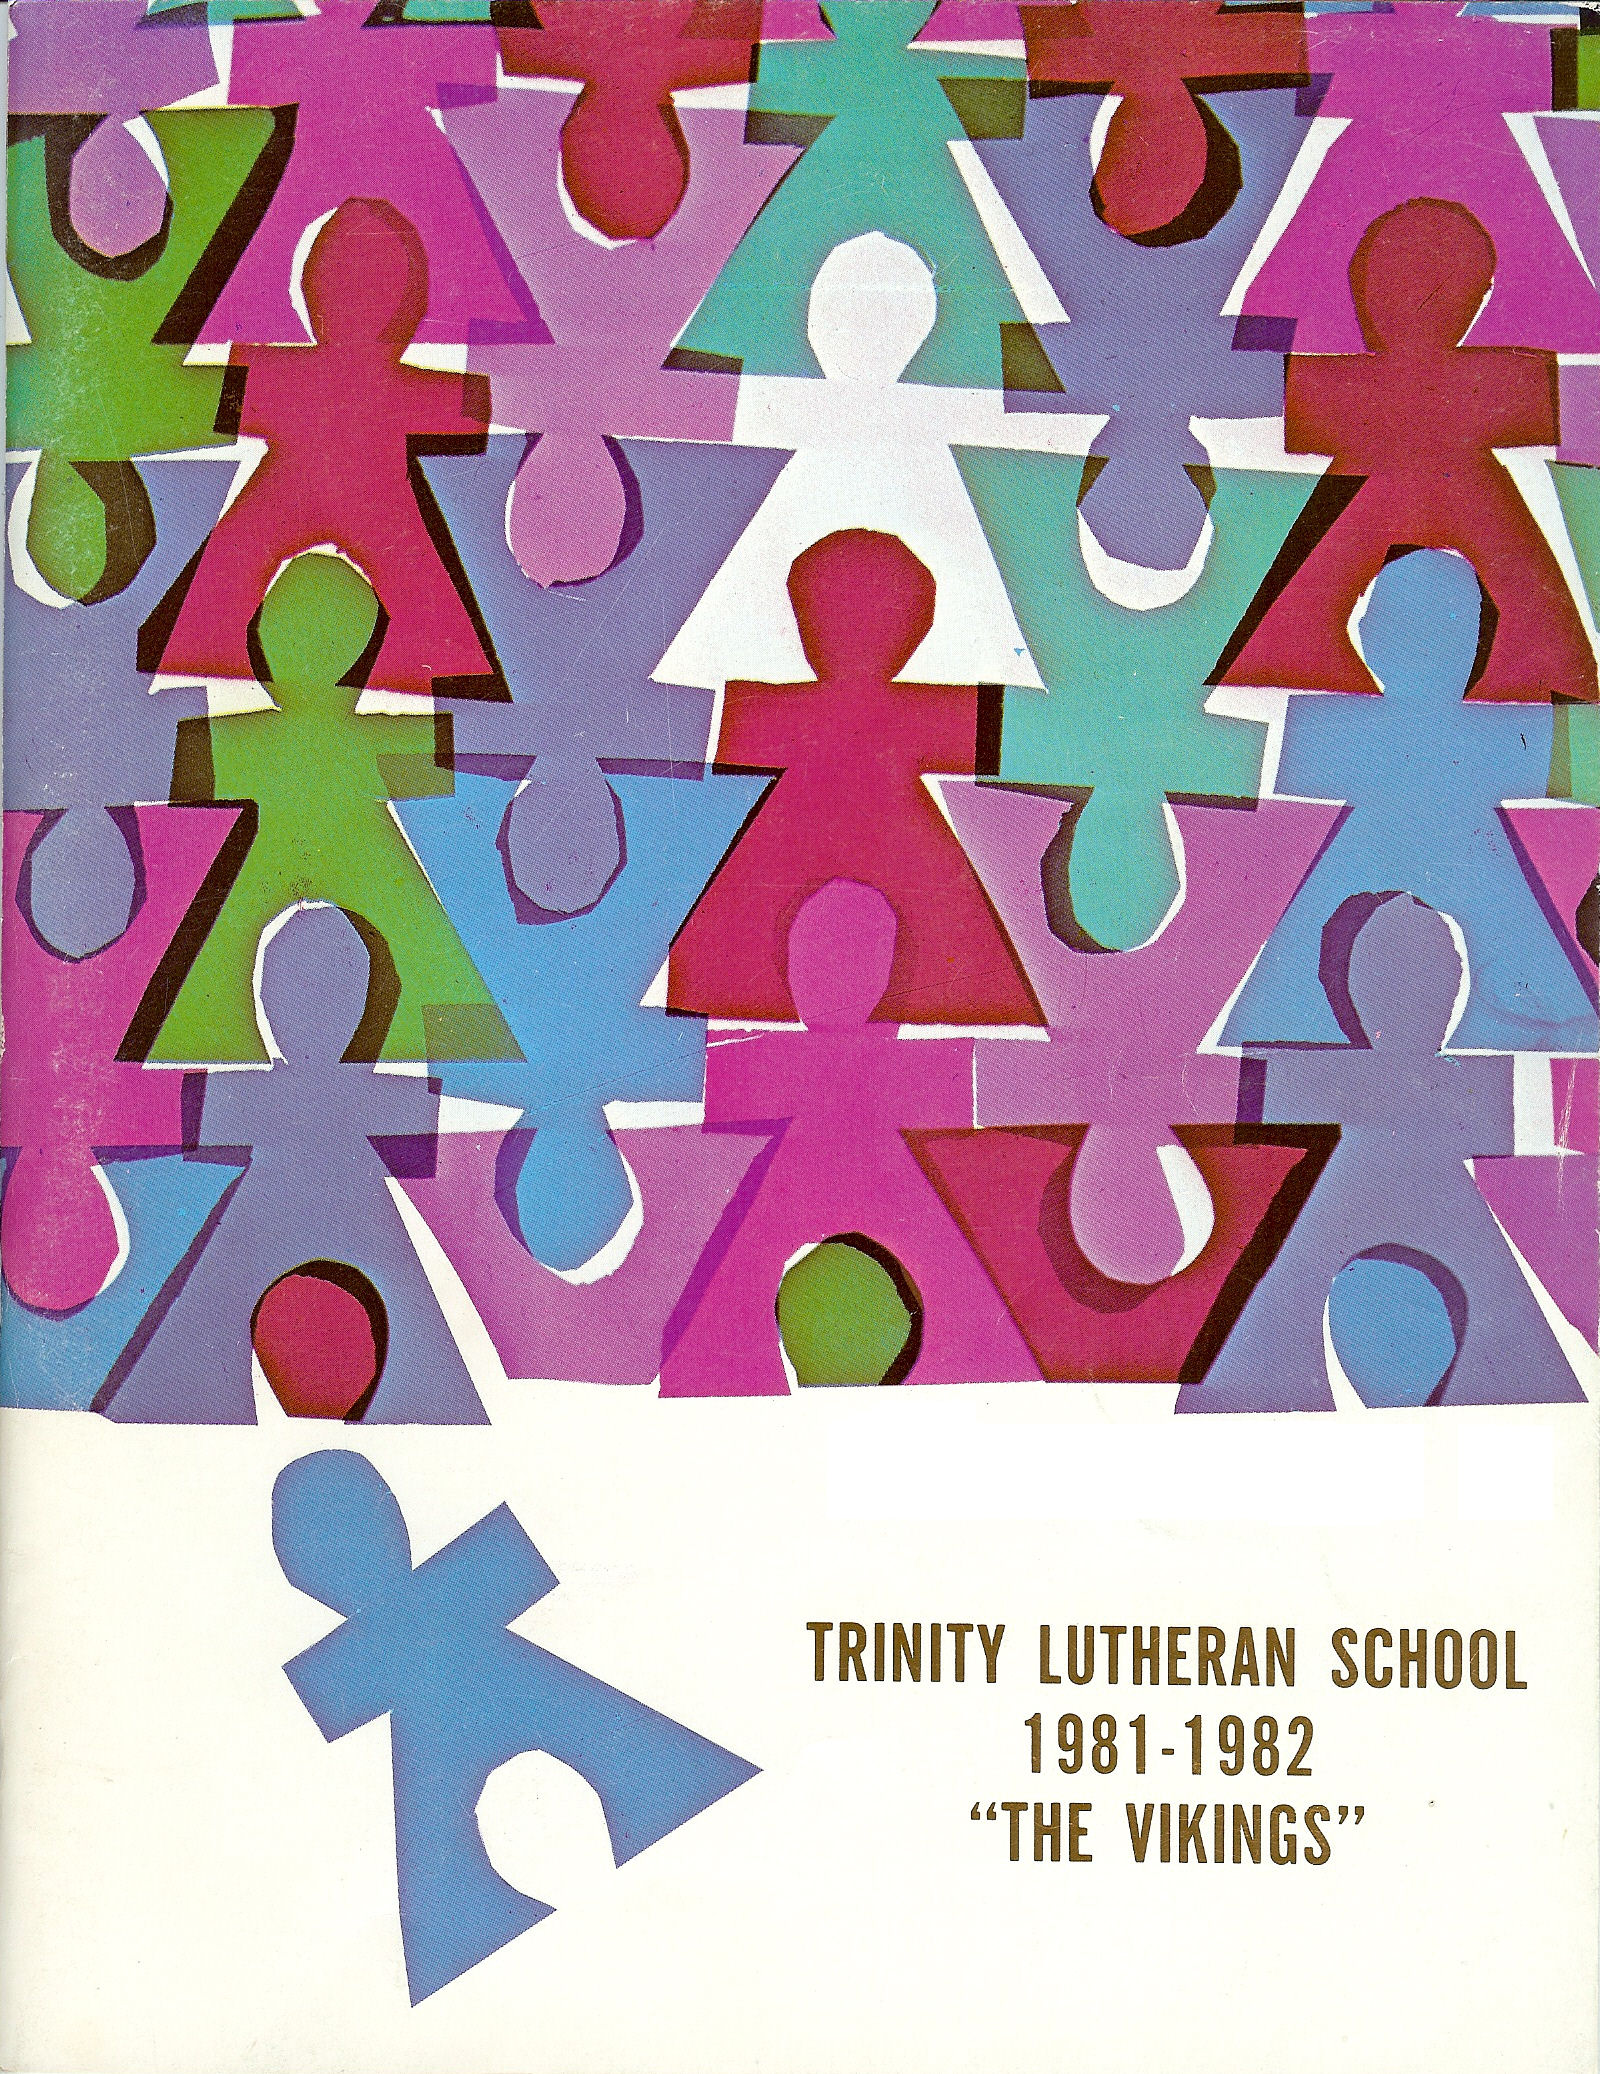 81-82 Yearbook Cover